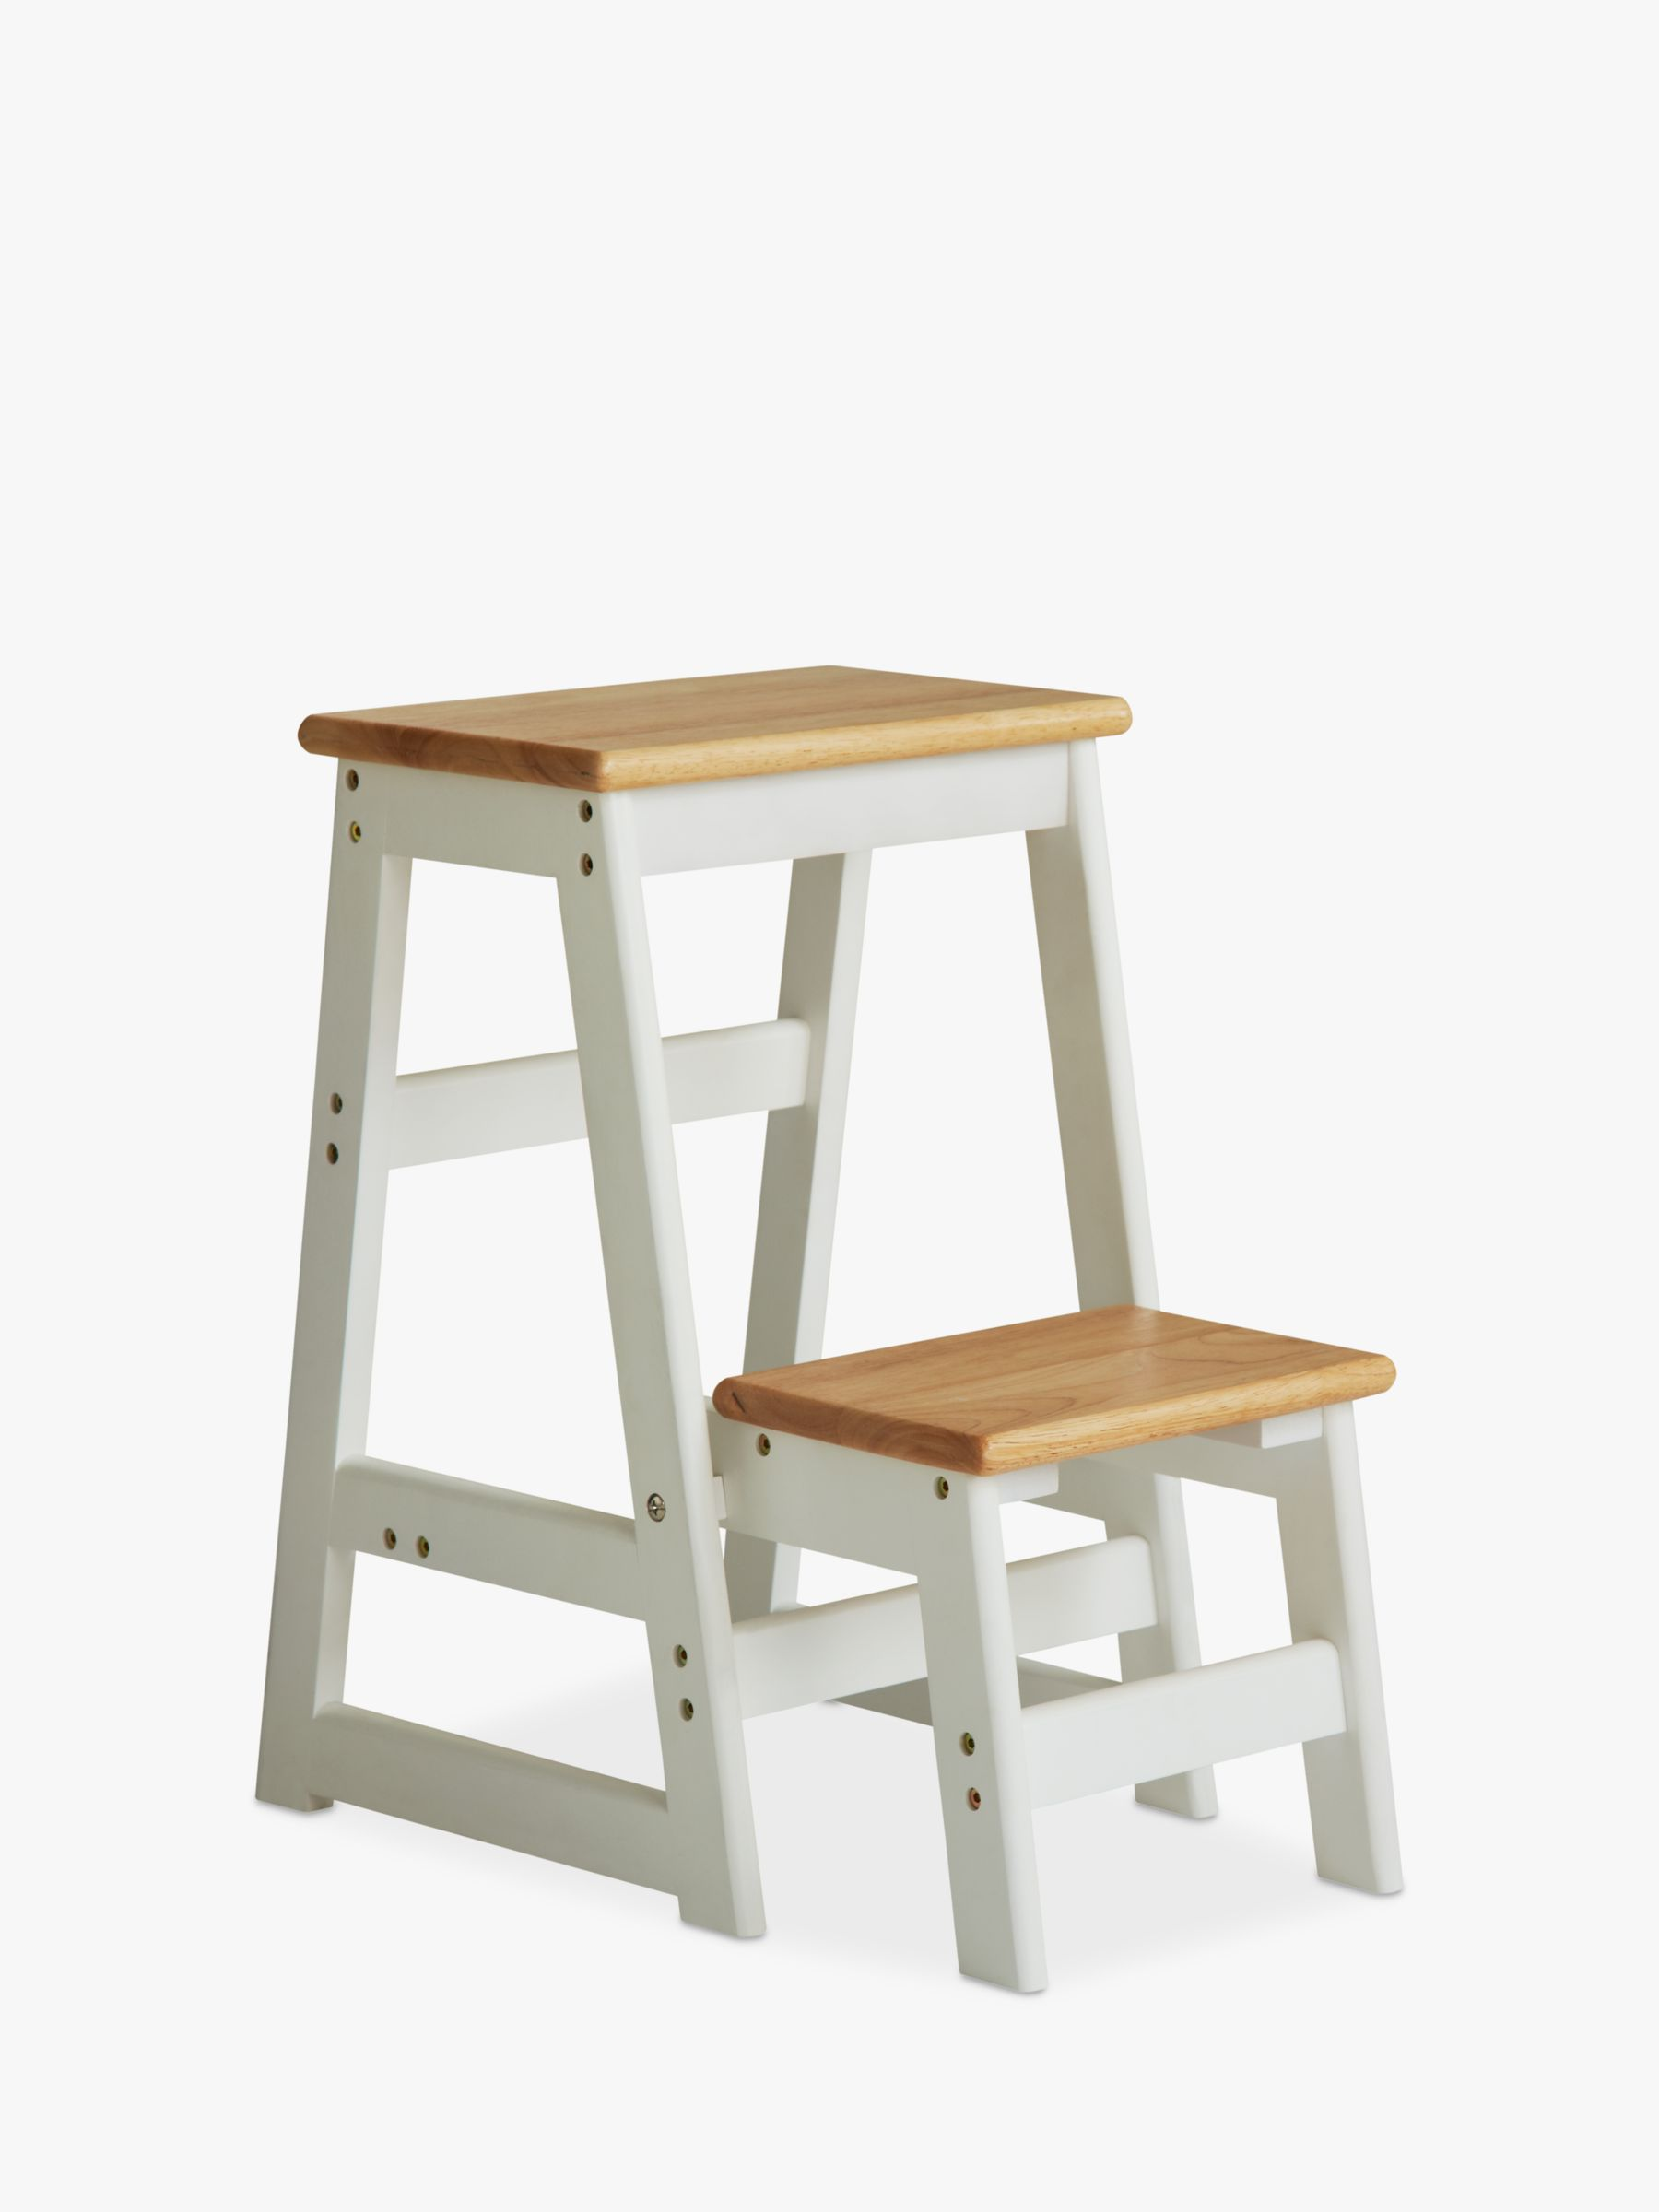 Chair Ladder House By John Lewis Fixed Wooden Step Stool At John Lewis